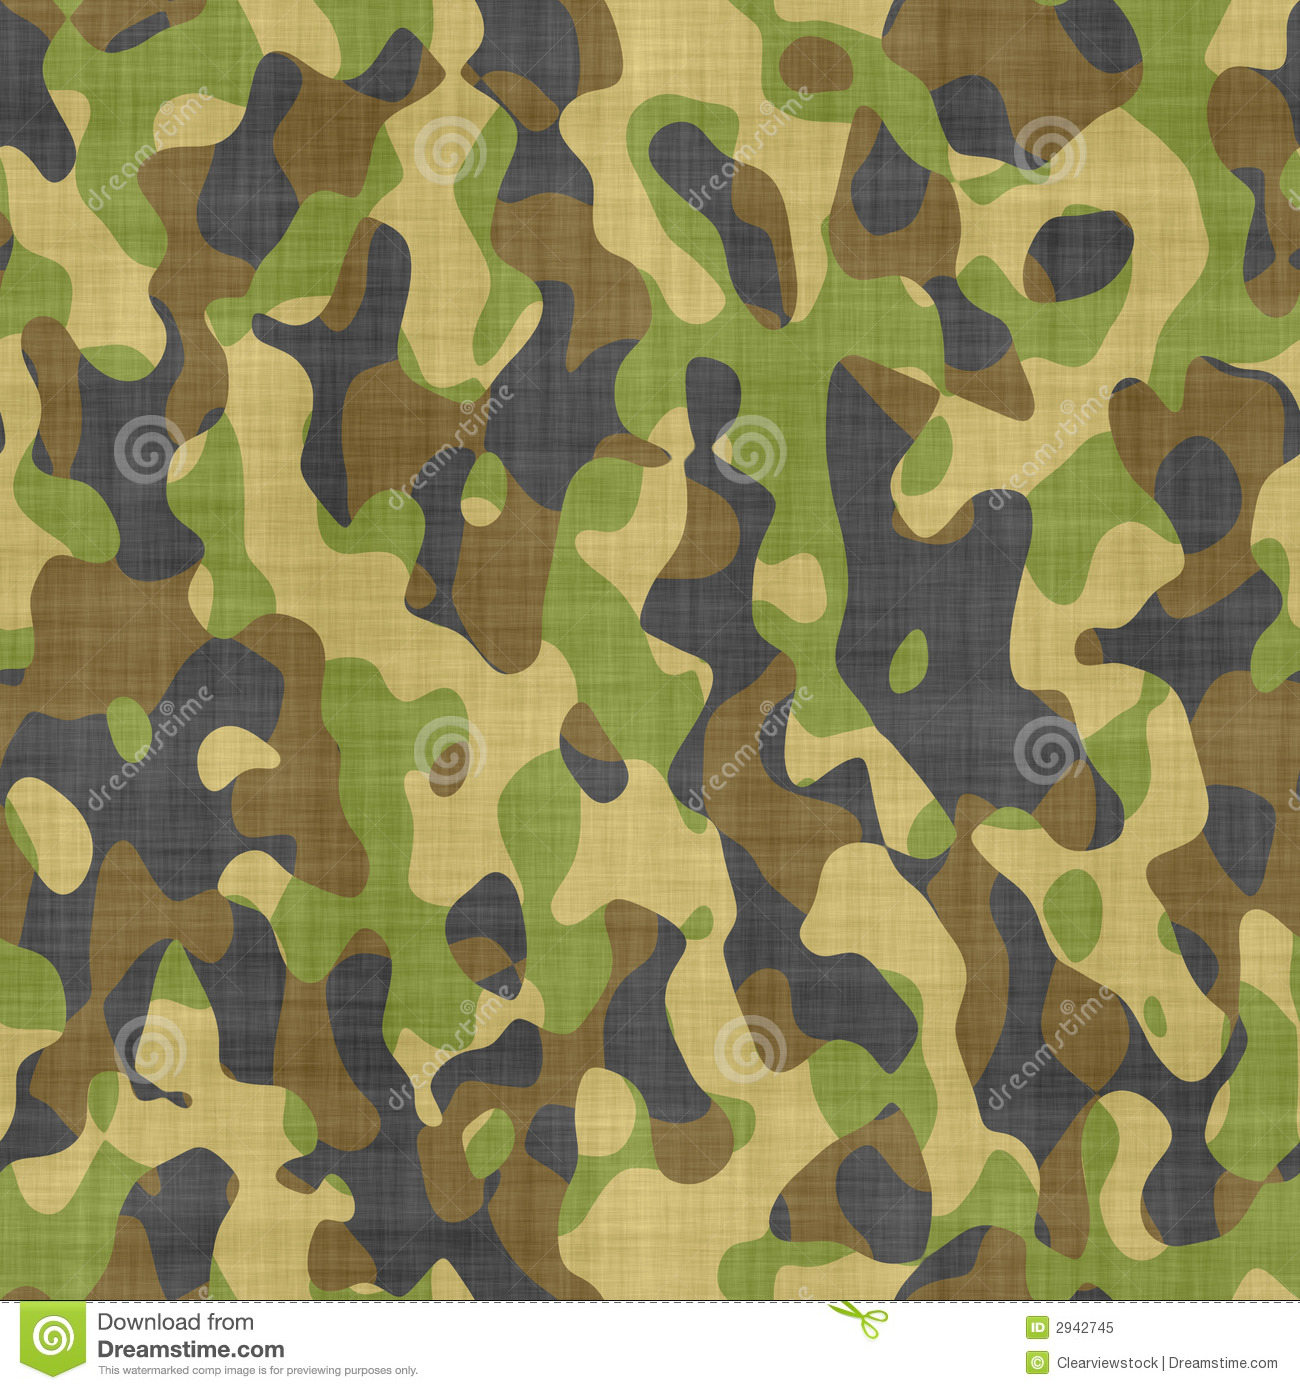 Green Camouflage Wallpaper